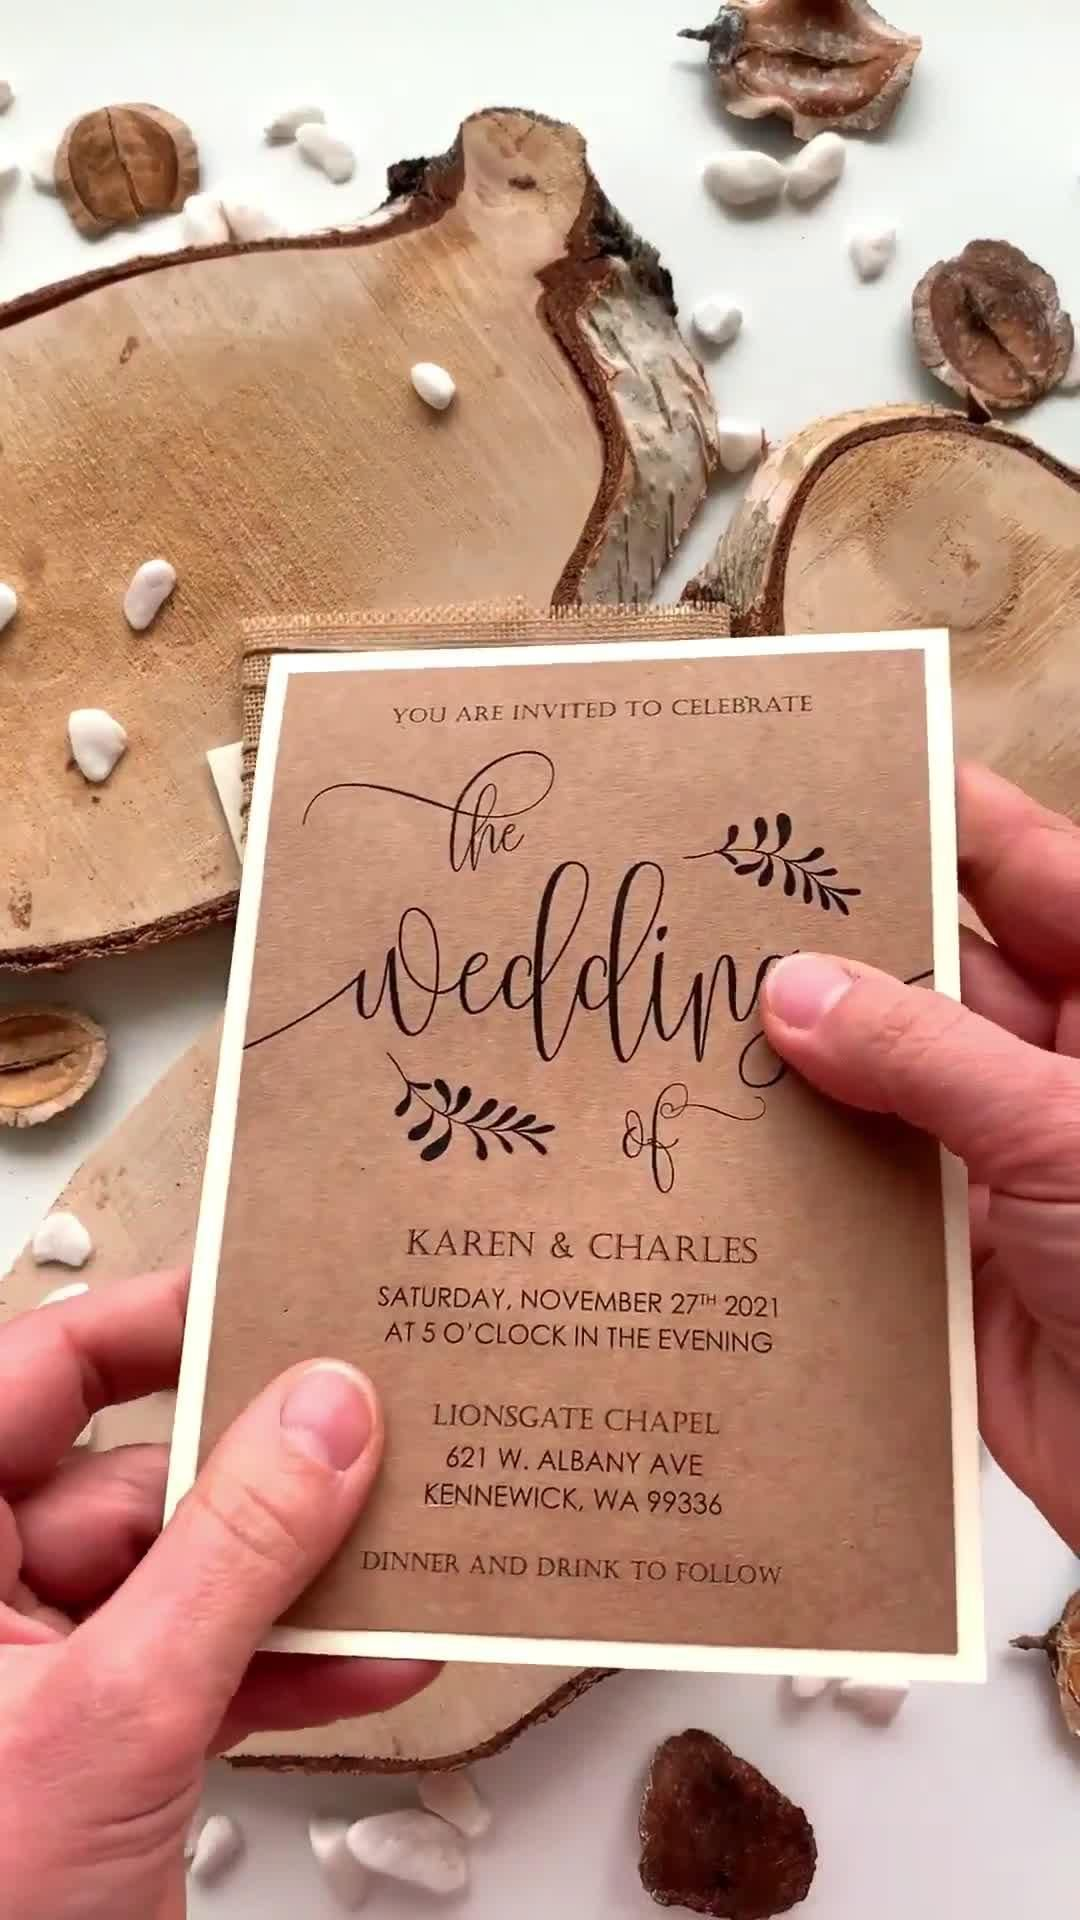 We Do Wedding Invitations, Wood Rustic Wedding Invitations – Boda fotos